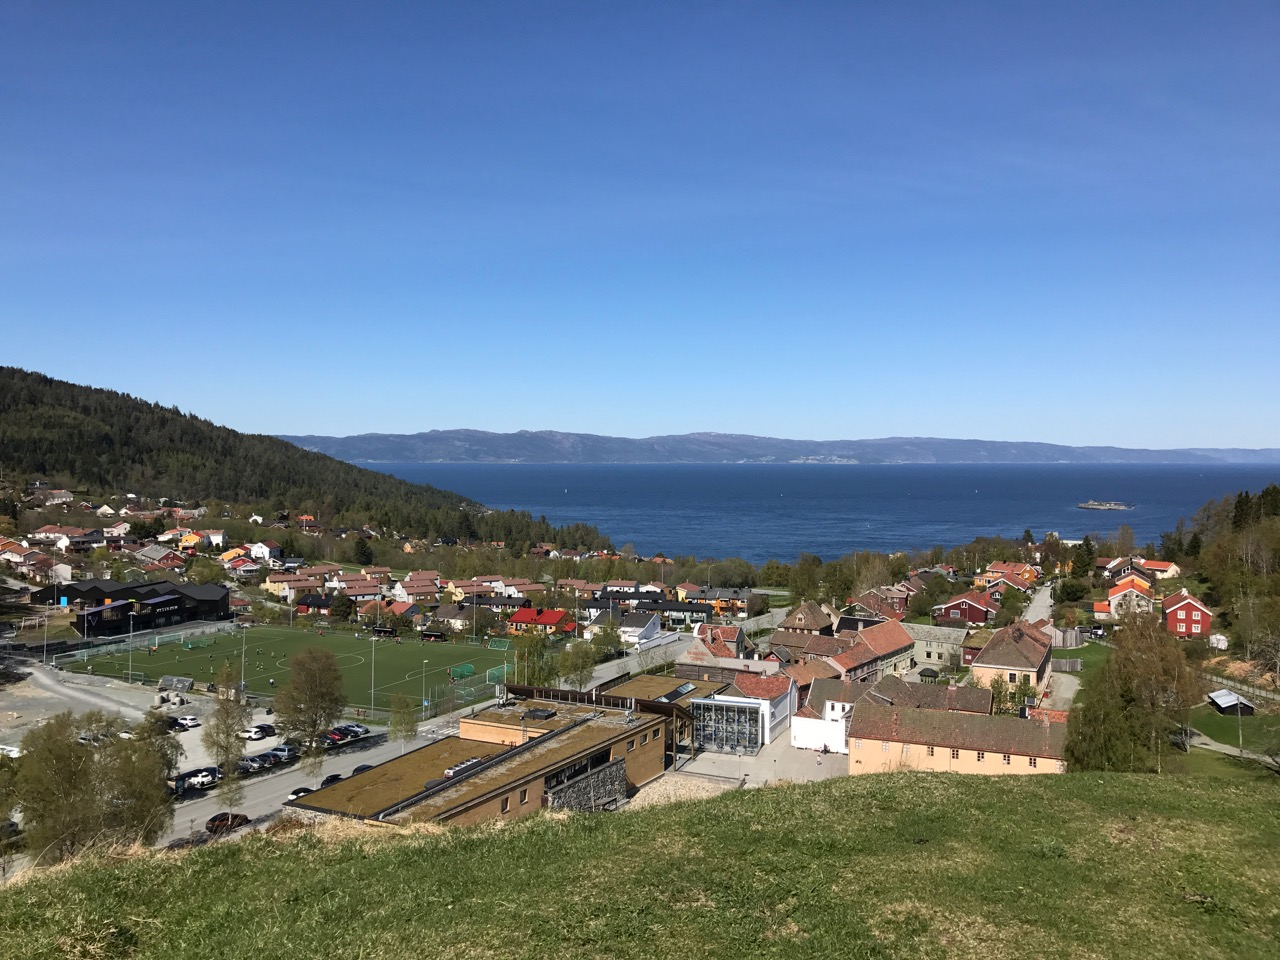 View from Sverresborg